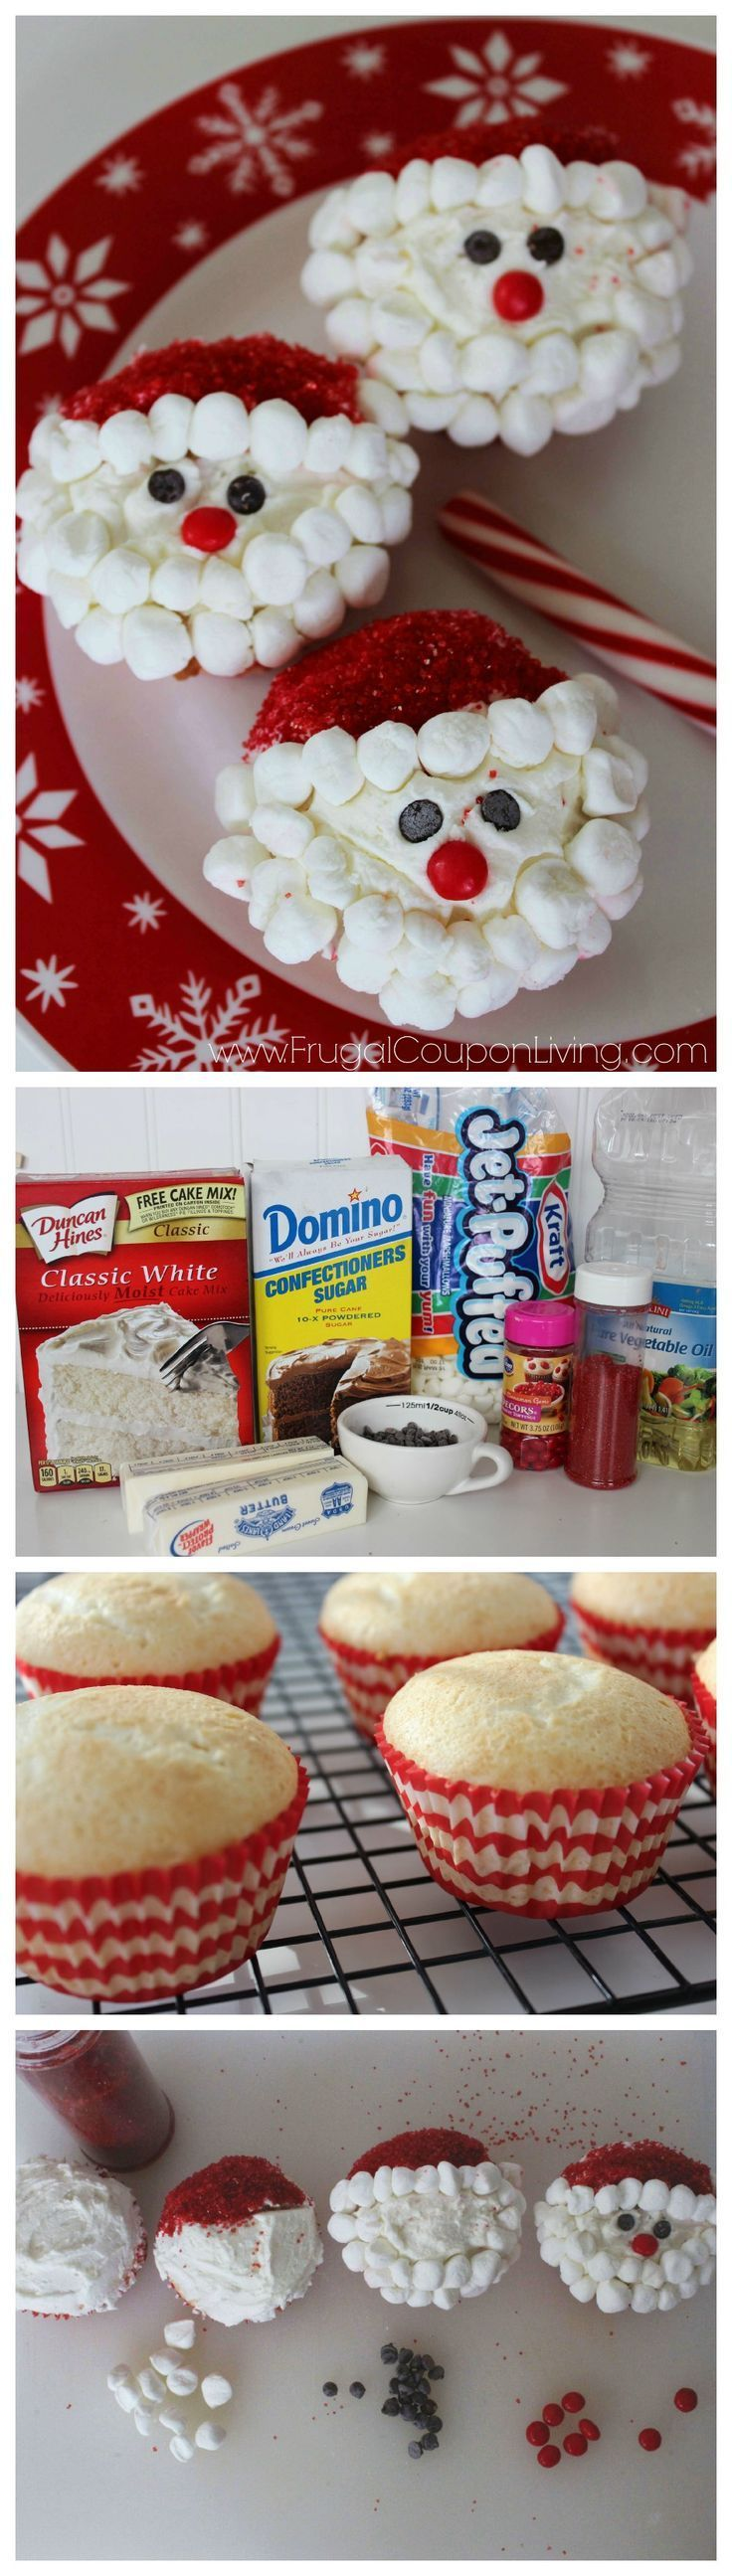 Easy Santa Cupcakes. This kids food craft is perfect for a cookie exchange, a school holiday party, and leaving out for Santa on Christmas Eve. Steps on Frugal Coupon Living.